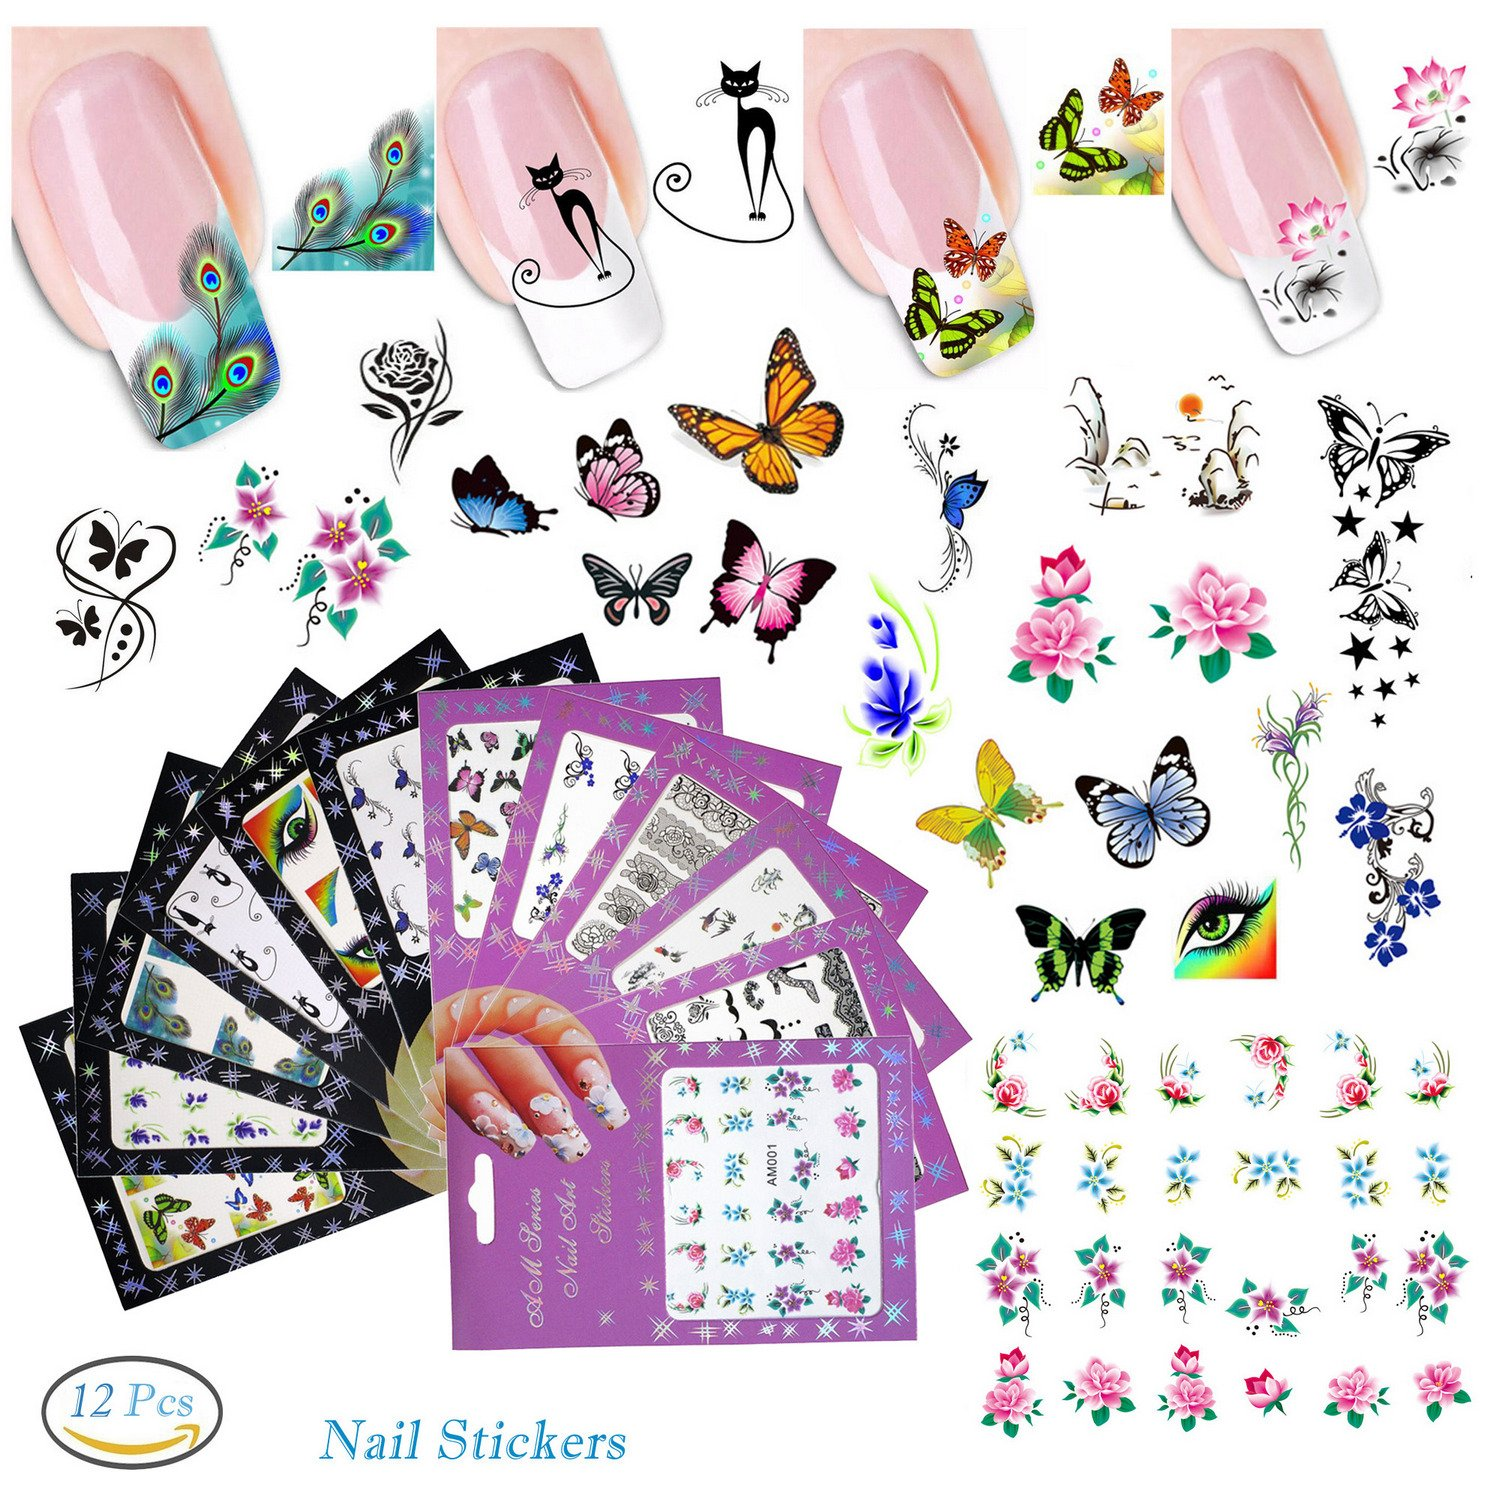 12 Sheets Nail Stickers Nail Foils Adhesive Stickers Flower Cartoon Animal Cat Butterfly Nail Decal DIY Tips Nail Art Decoration Color Nail Beauty Tool (A) LuckForever